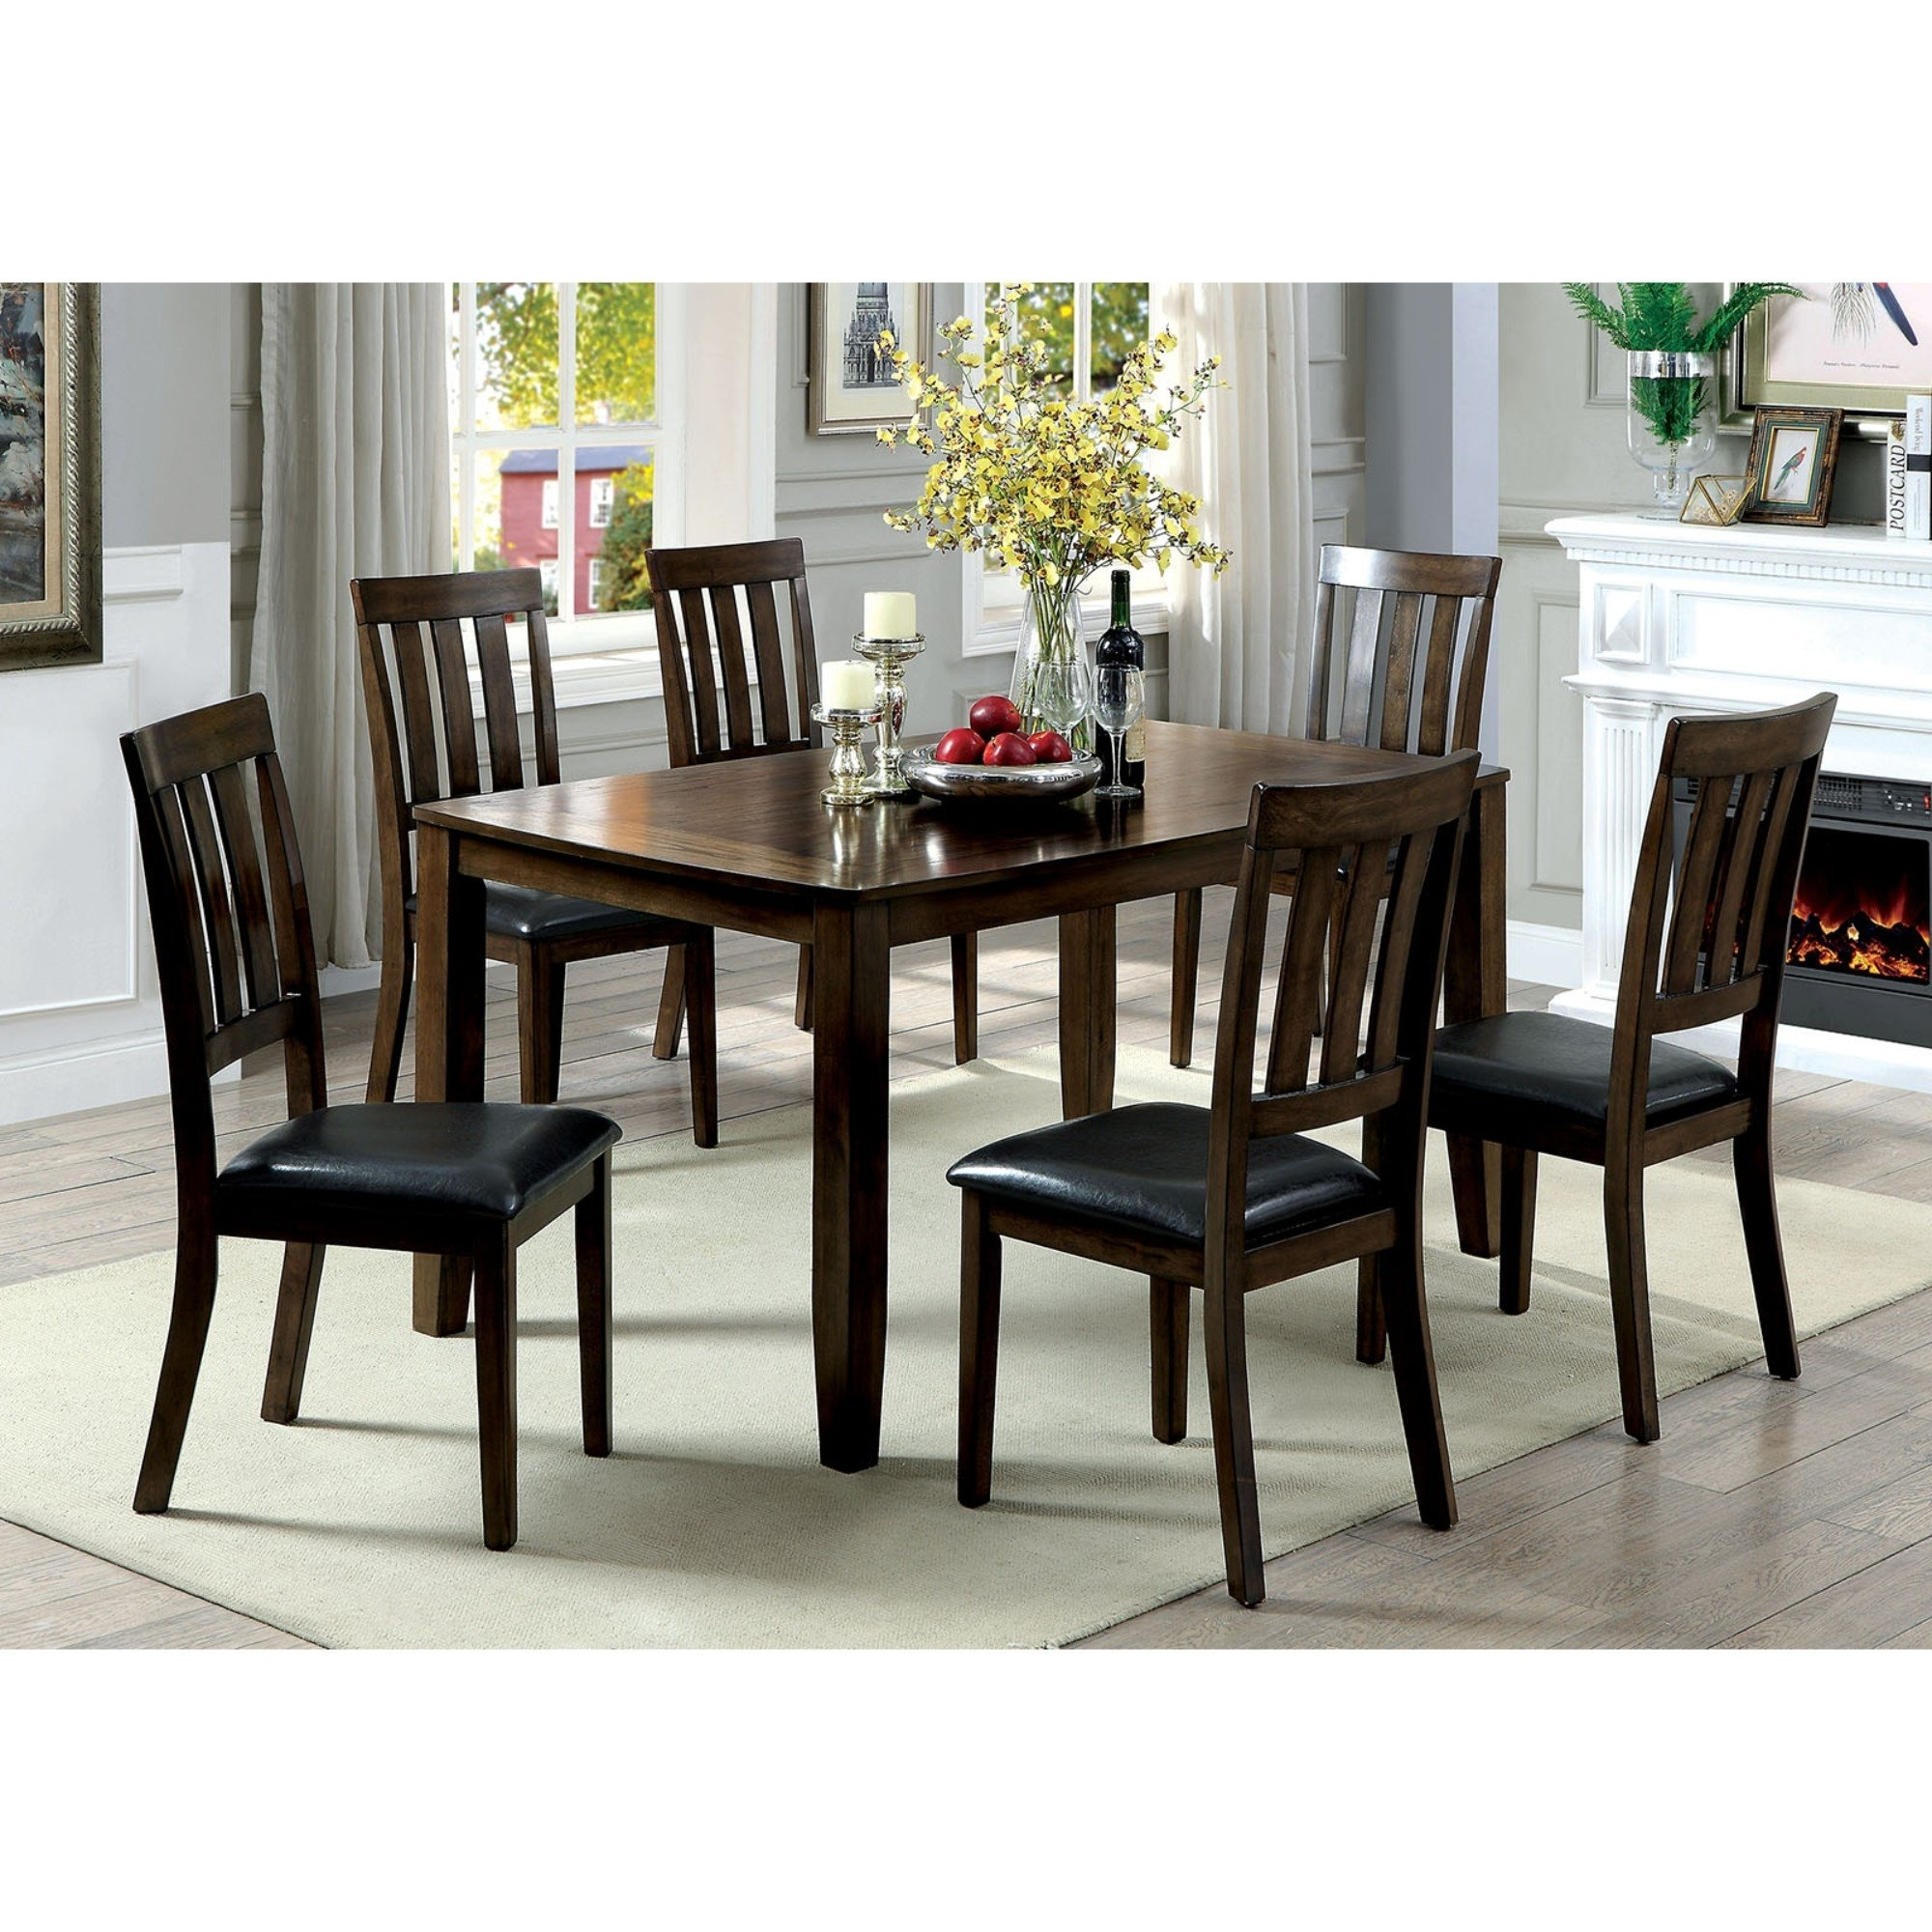 Millwood Pines Devon Wooden 7 Piece Counter Height Dining Table Set Pertaining To Most Up To Date Candice Ii 6 Piece Extension Rectangle Dining Sets (View 6 of 20)